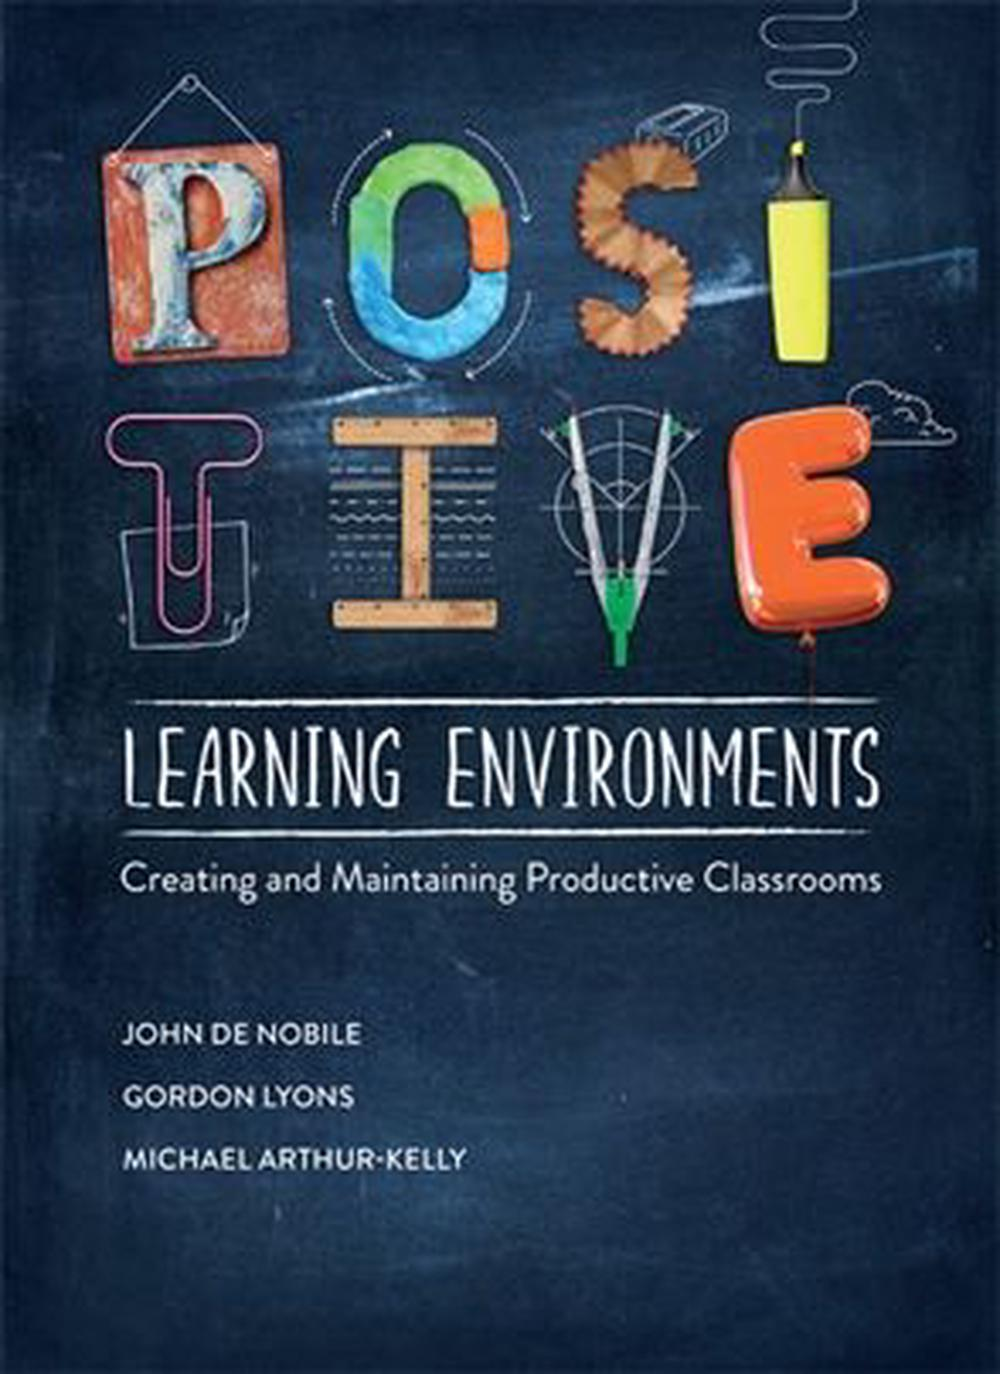 Positive Learning Environments: Creating and Maintaining Productive Classrooms, 1st Edition